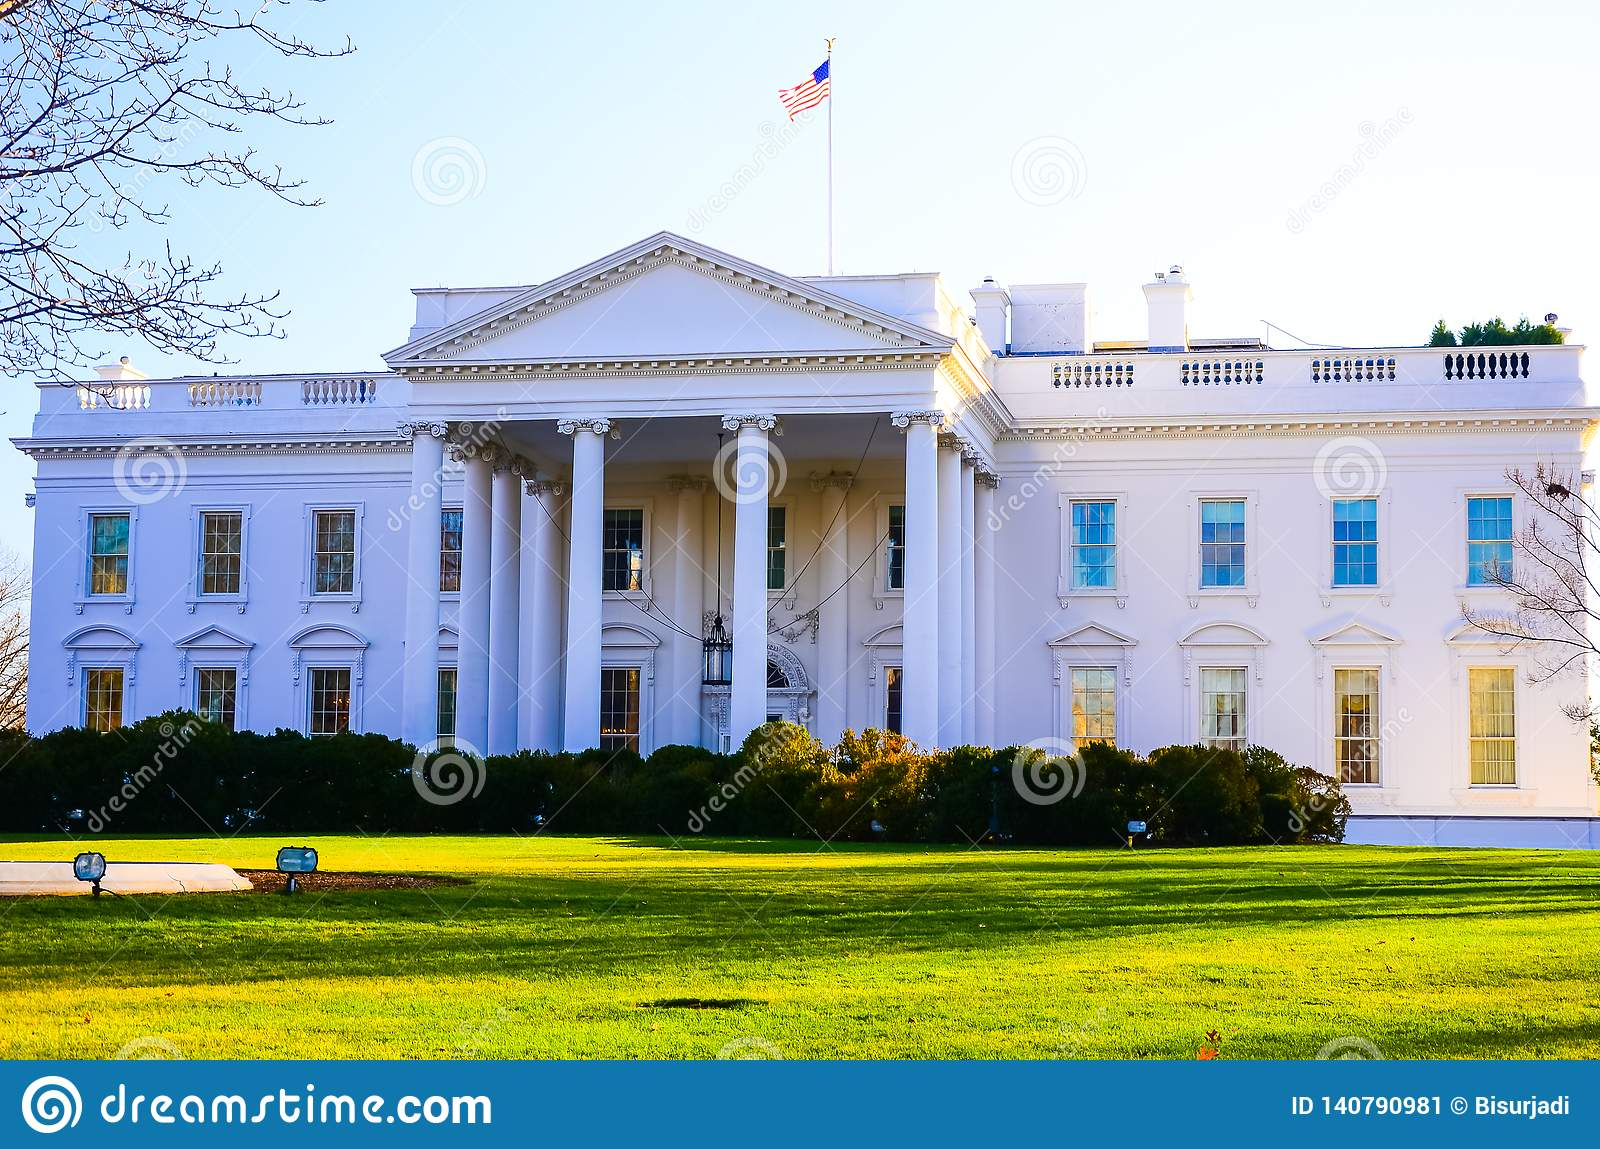 The famous building in the US America, the White House